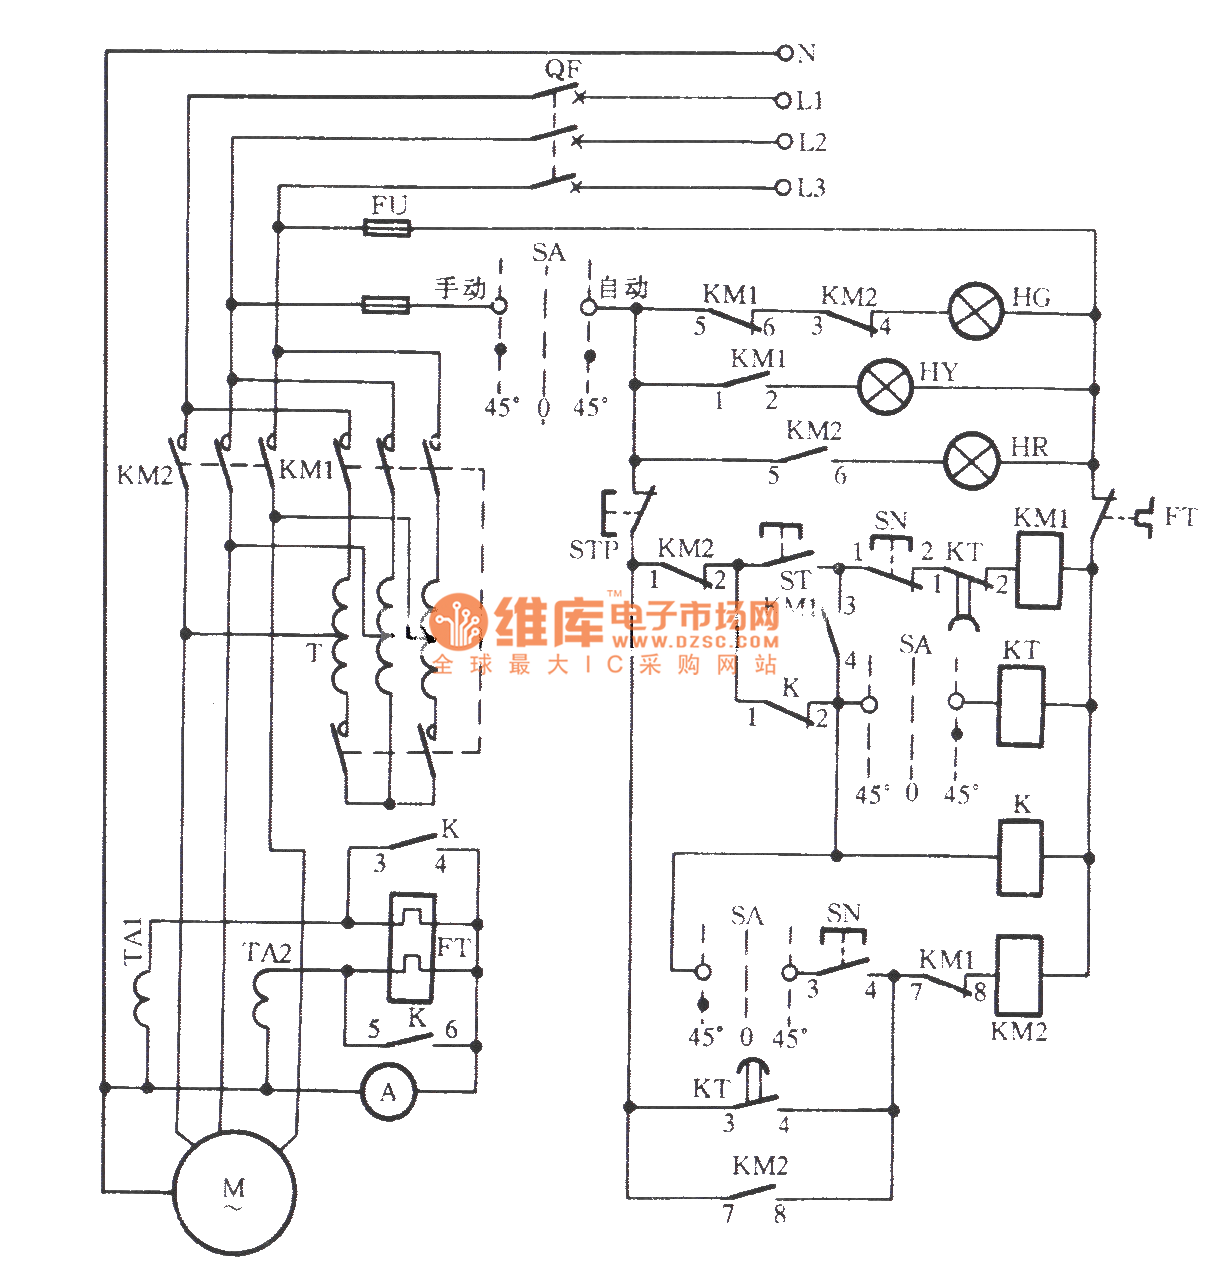 Astonishing Vertical Mill Electrical Control Circuit Relaycontrol Control Wiring Cloud Overrenstrafr09Org